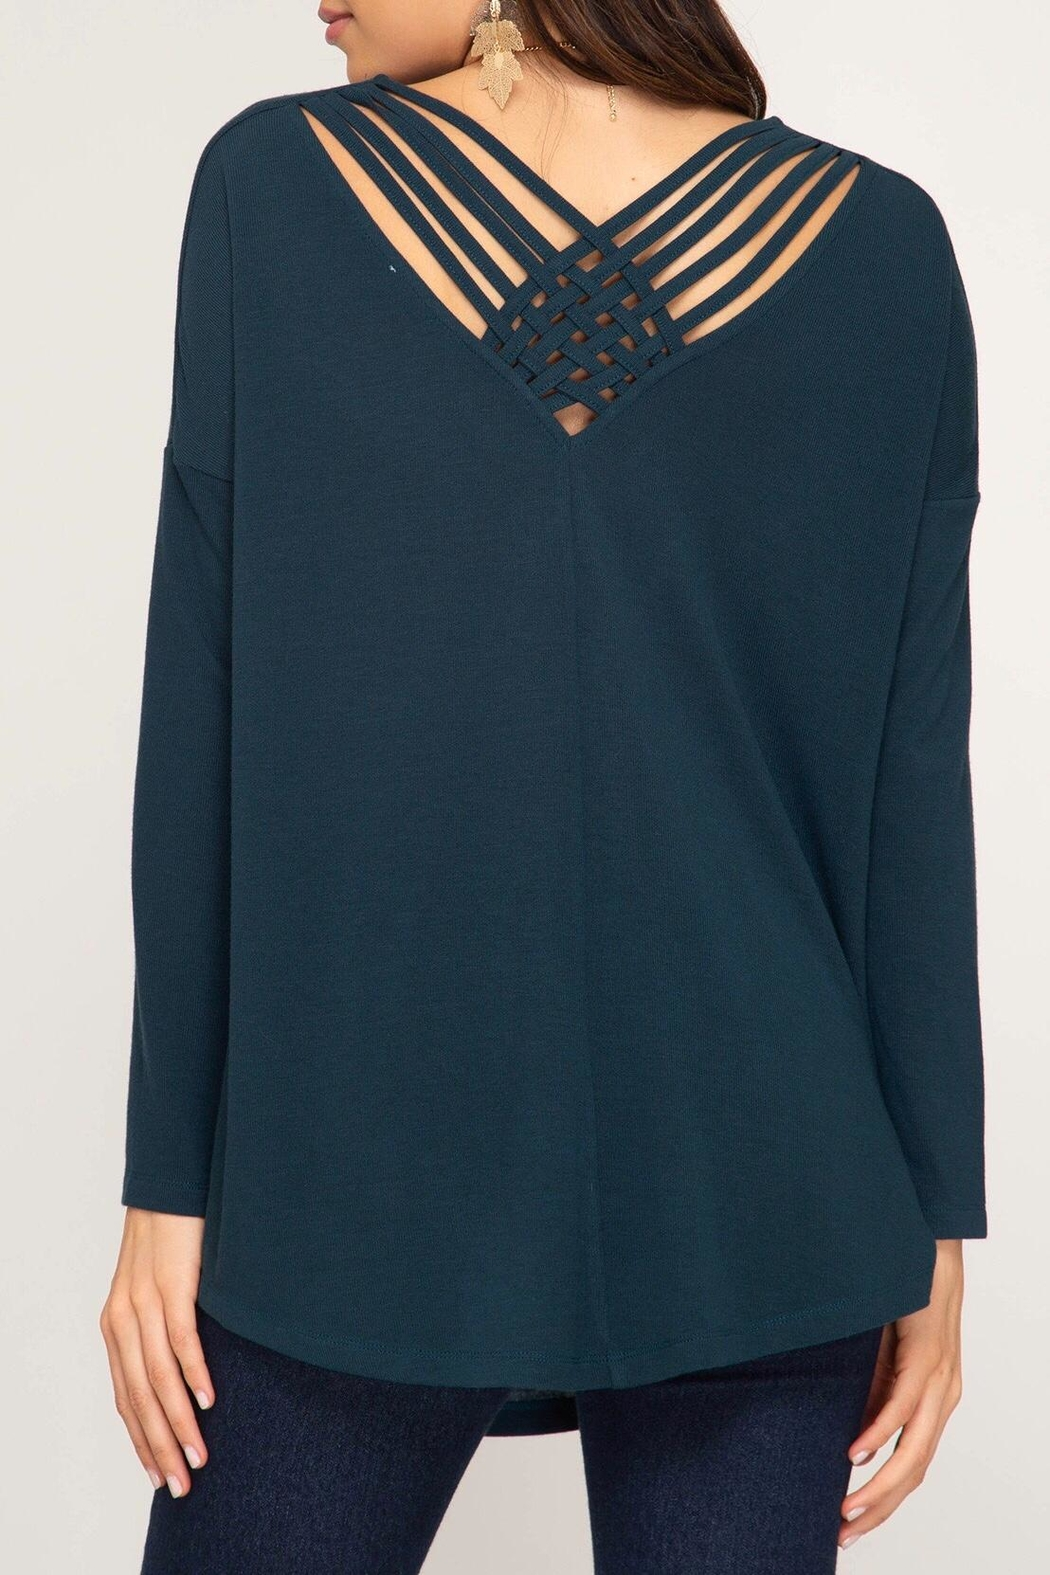 LuLu's Boutique Strappy Back Tunic - Main Image